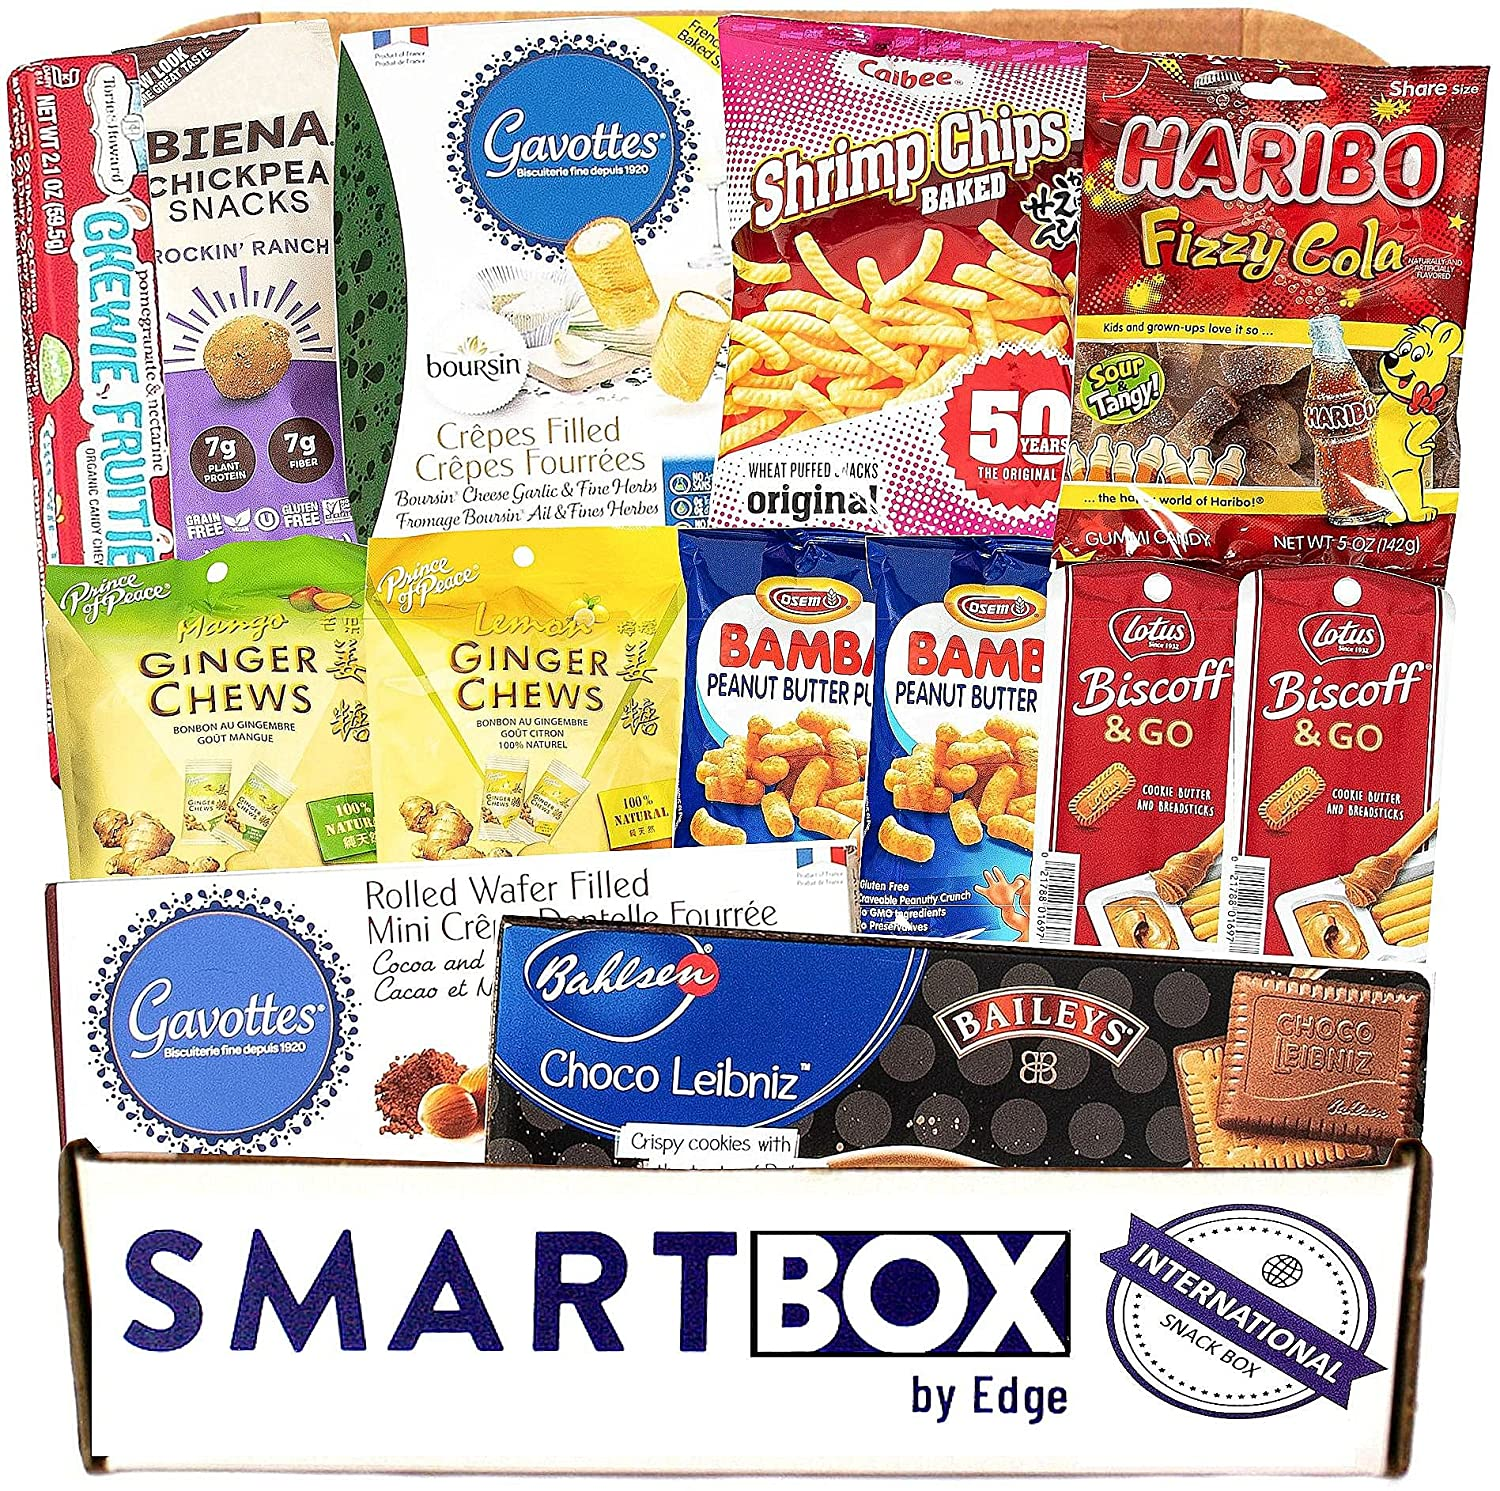 Jumbo International Snack Box and Care Package | Gourmet Global Candy and Snacks Set | Packed with Premium Treats and Candy - European, Asian, and South American!